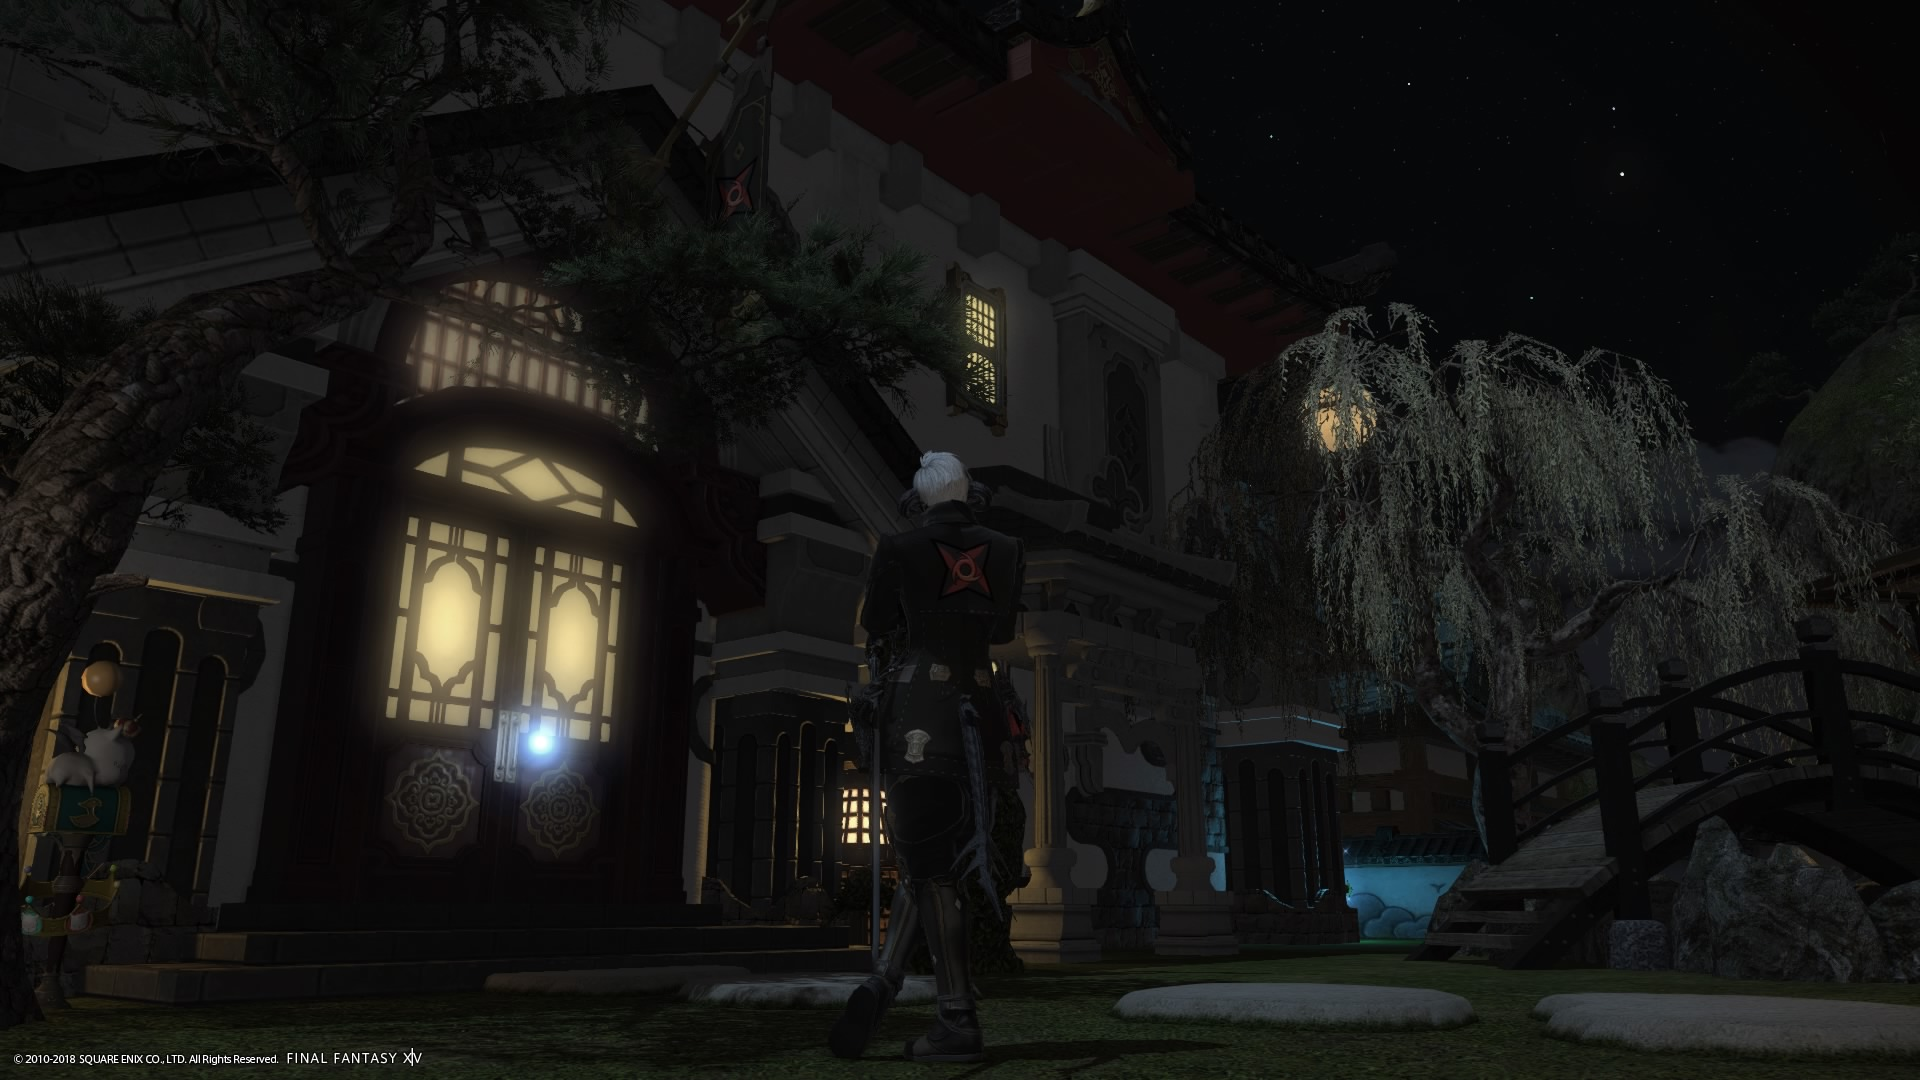 Front door to the S.N.A. Chapterhouse in FFXIV